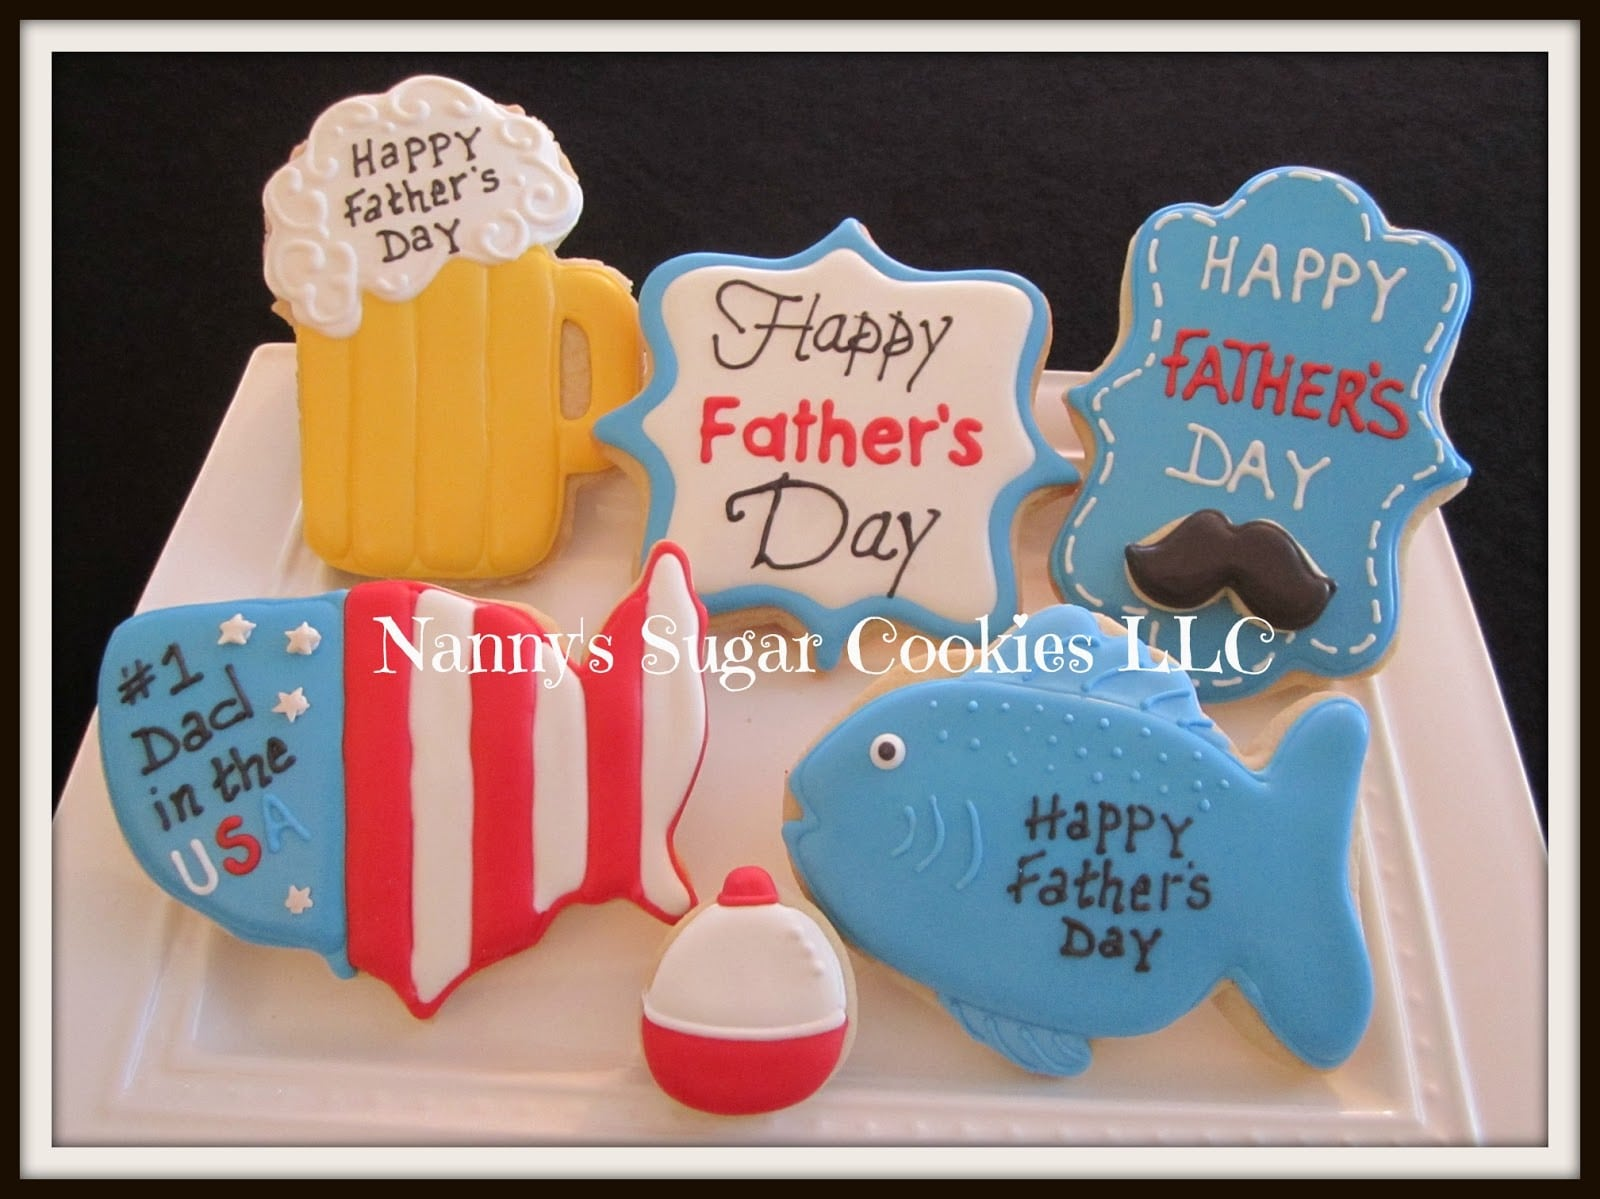 Nanny's Sugar Cookies Llc  Celebrating Dadshappy Father's Day 2016